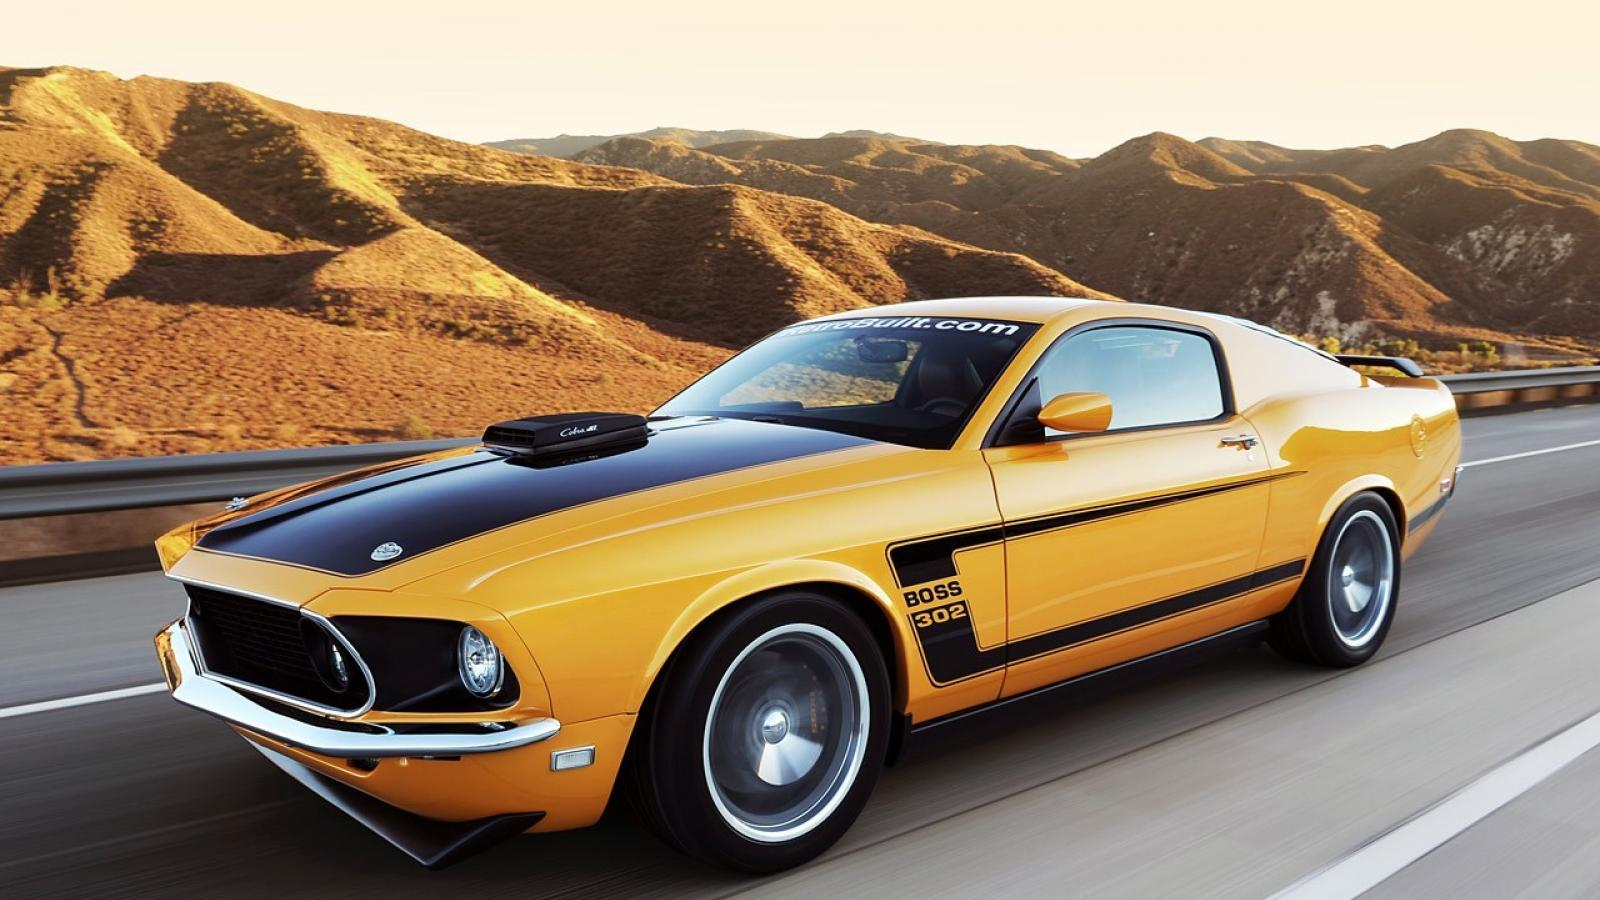 Ford muscle cars 1969 mustang car fastback wallpaper 68846 1600x900